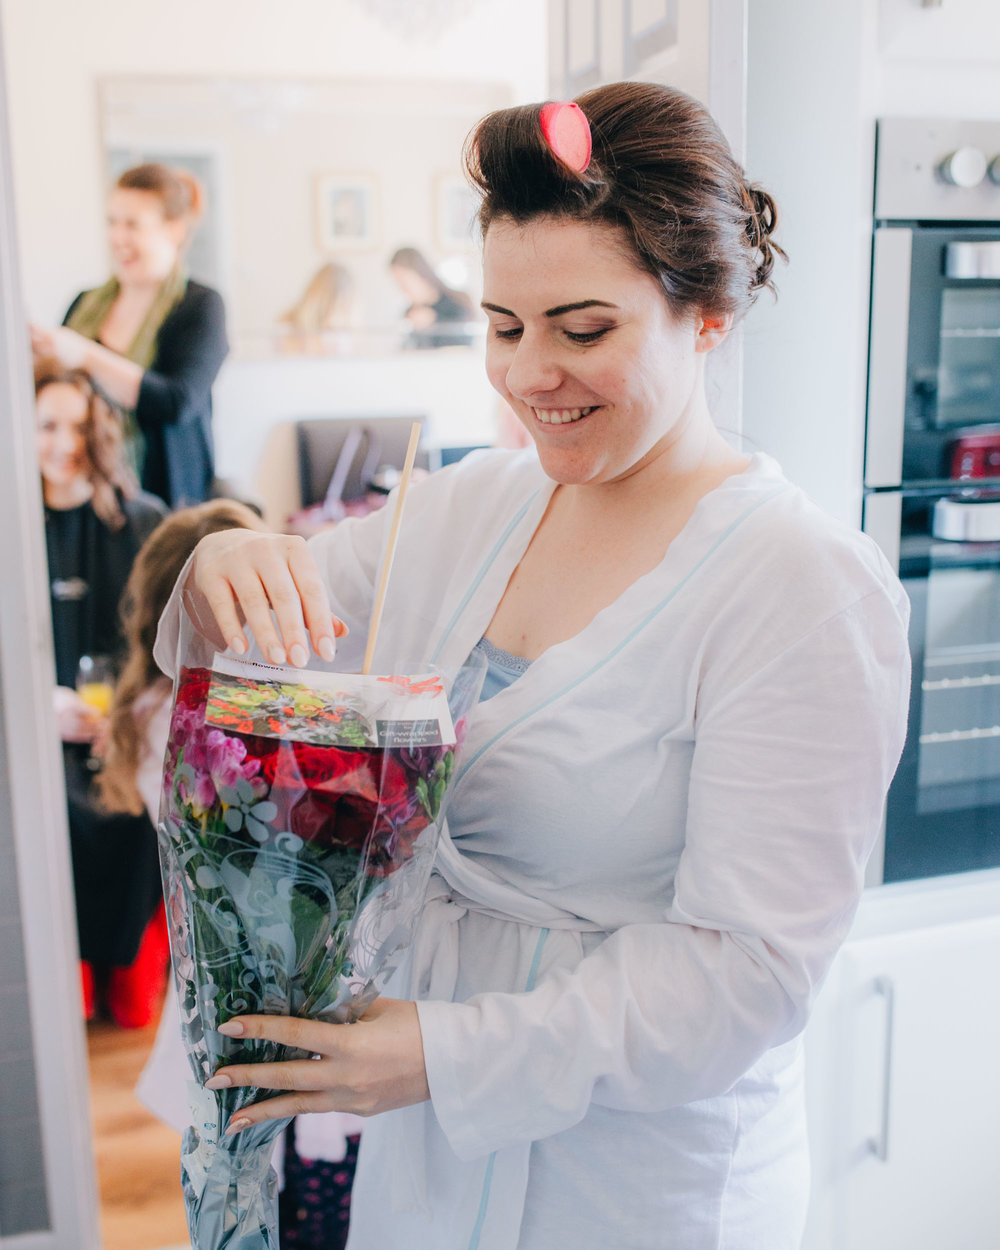 Bride looking at flowers, Documentary wedding photography, Vintage wedding at Ashton Memorial.